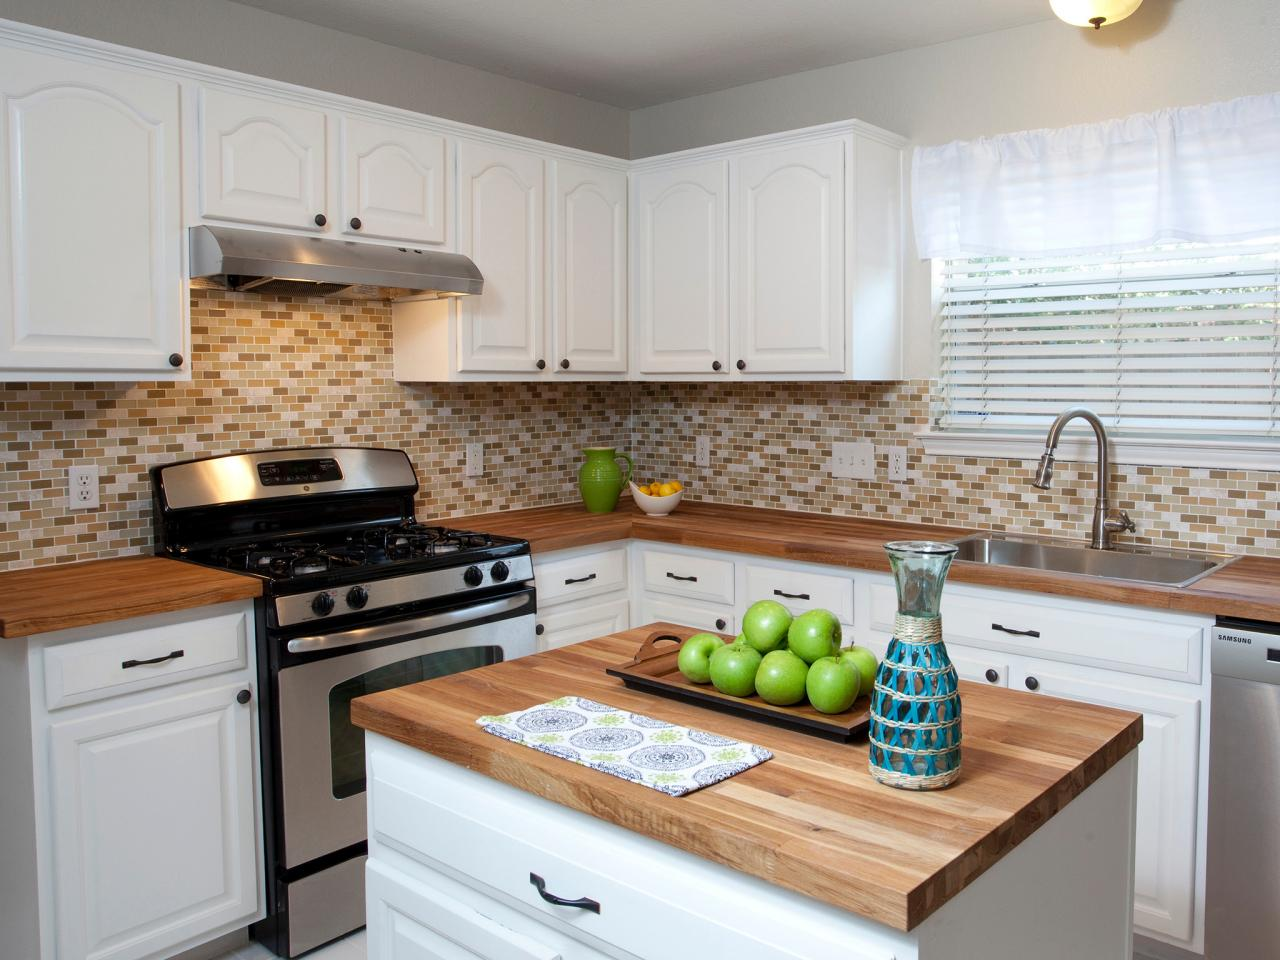 Painting A Kitchen Countertop Painting Kitchen Countertops Pictures Options And Ideas Hgtv